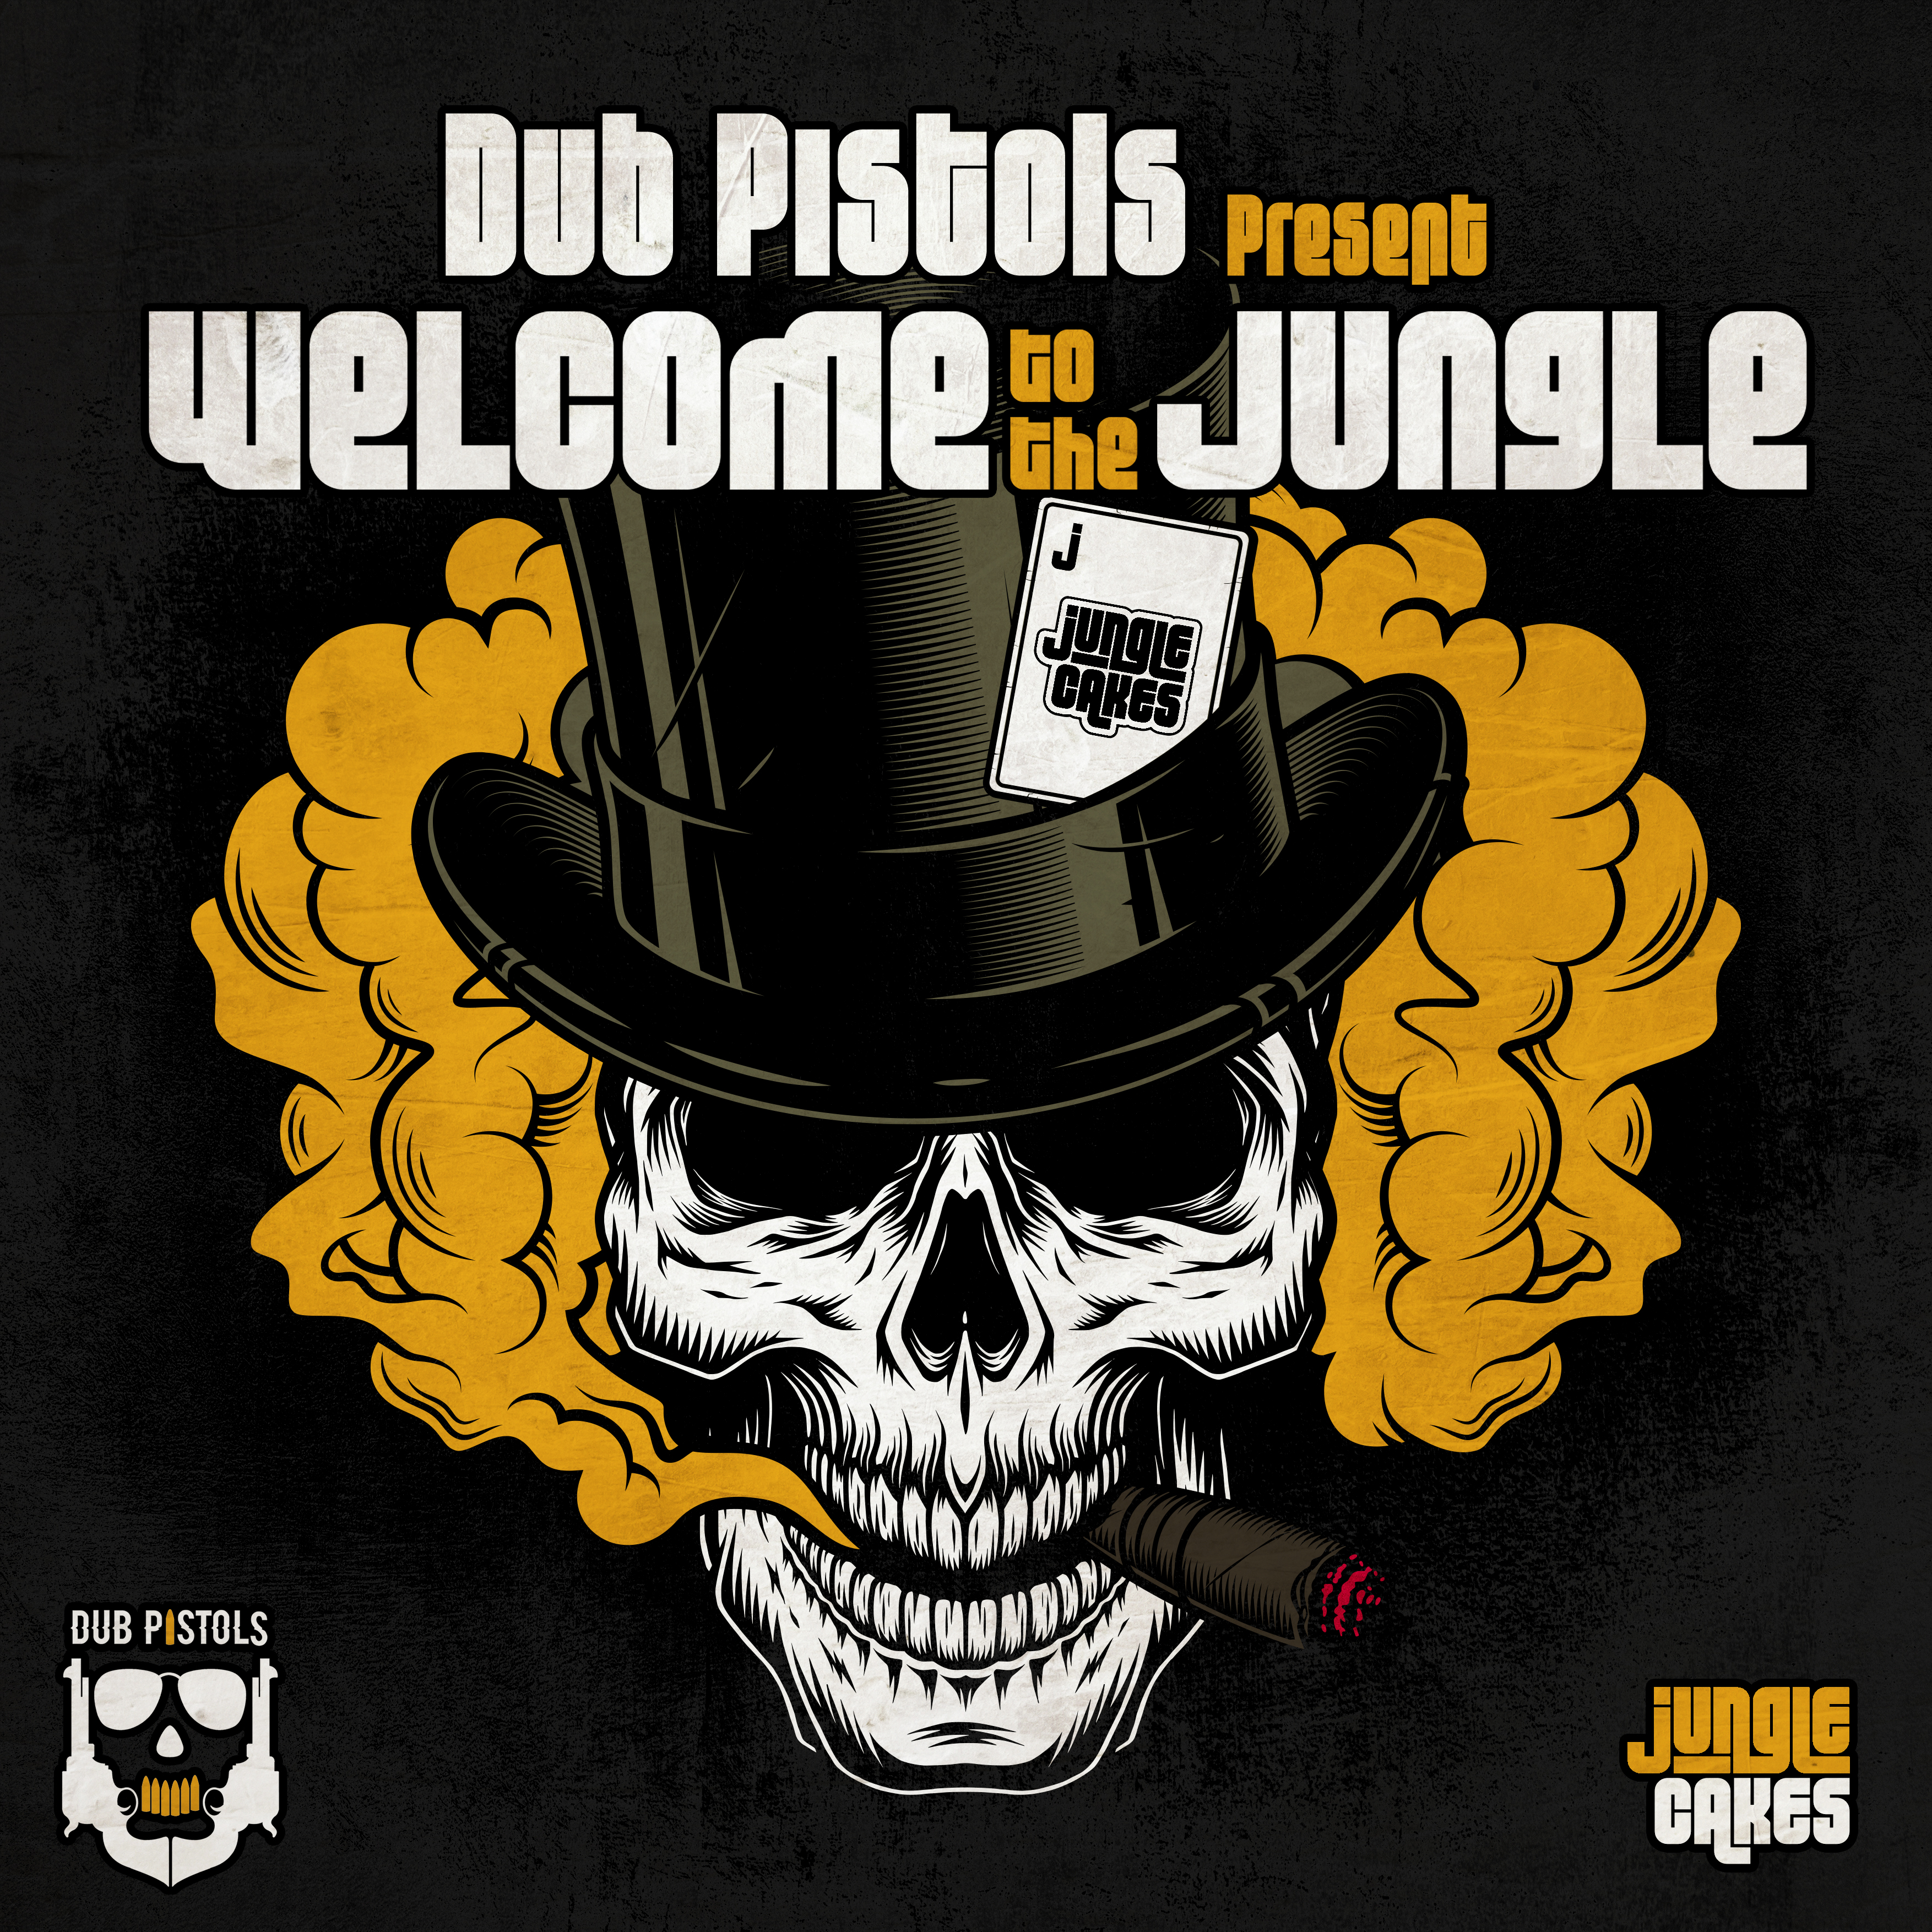 Dub Pistols present Welcome To The Jungle Image